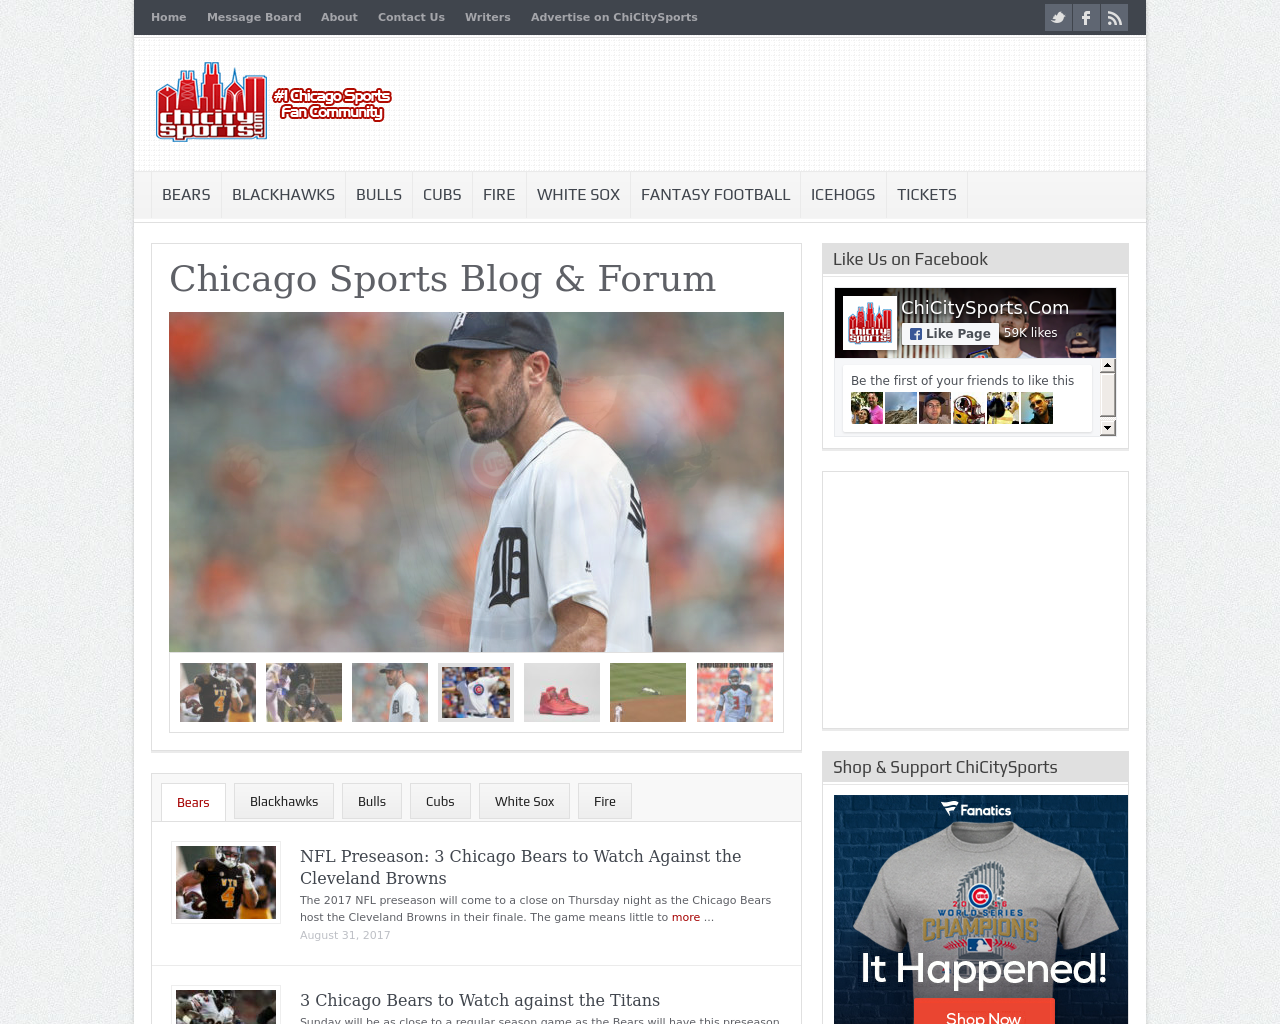 Chicitysports-Advertising-Reviews-Pricing